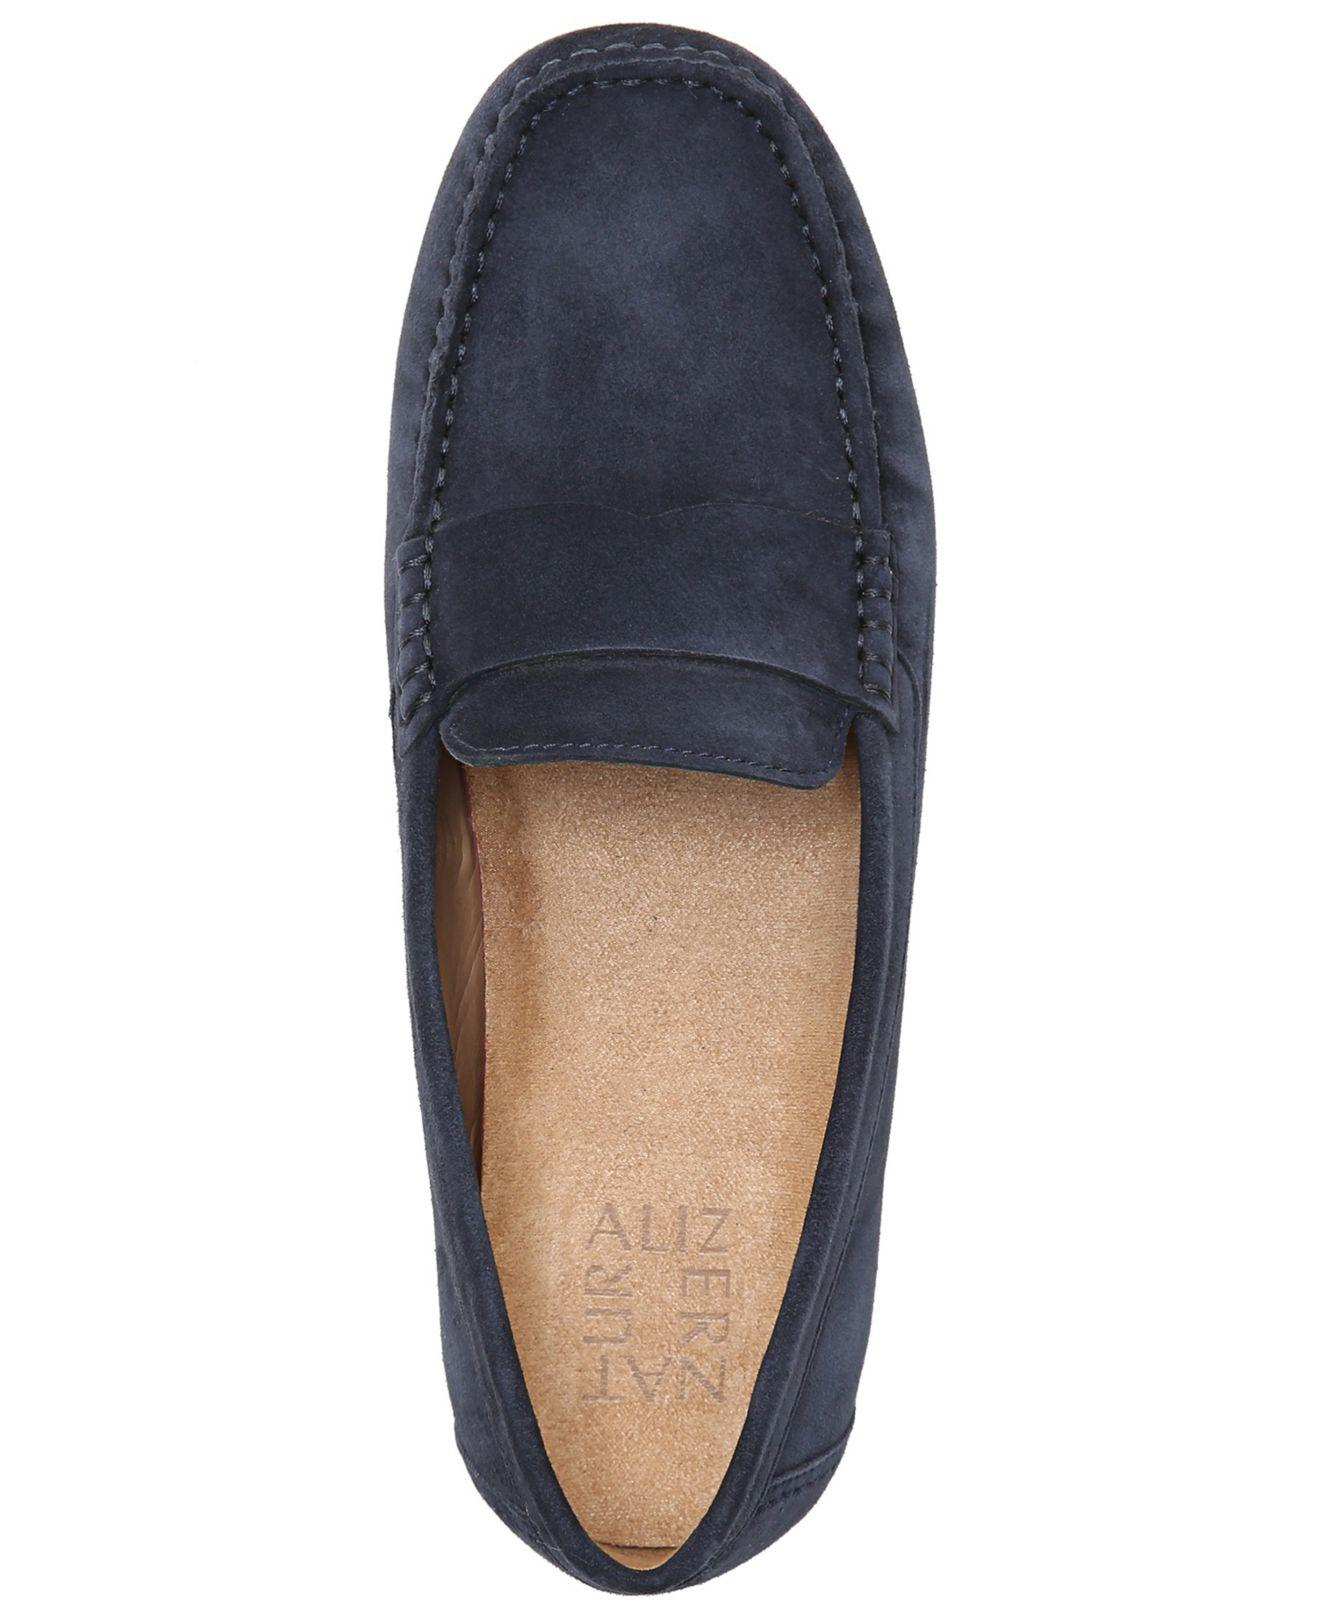 Naturalizer Suede Brynn Loafers in Blue